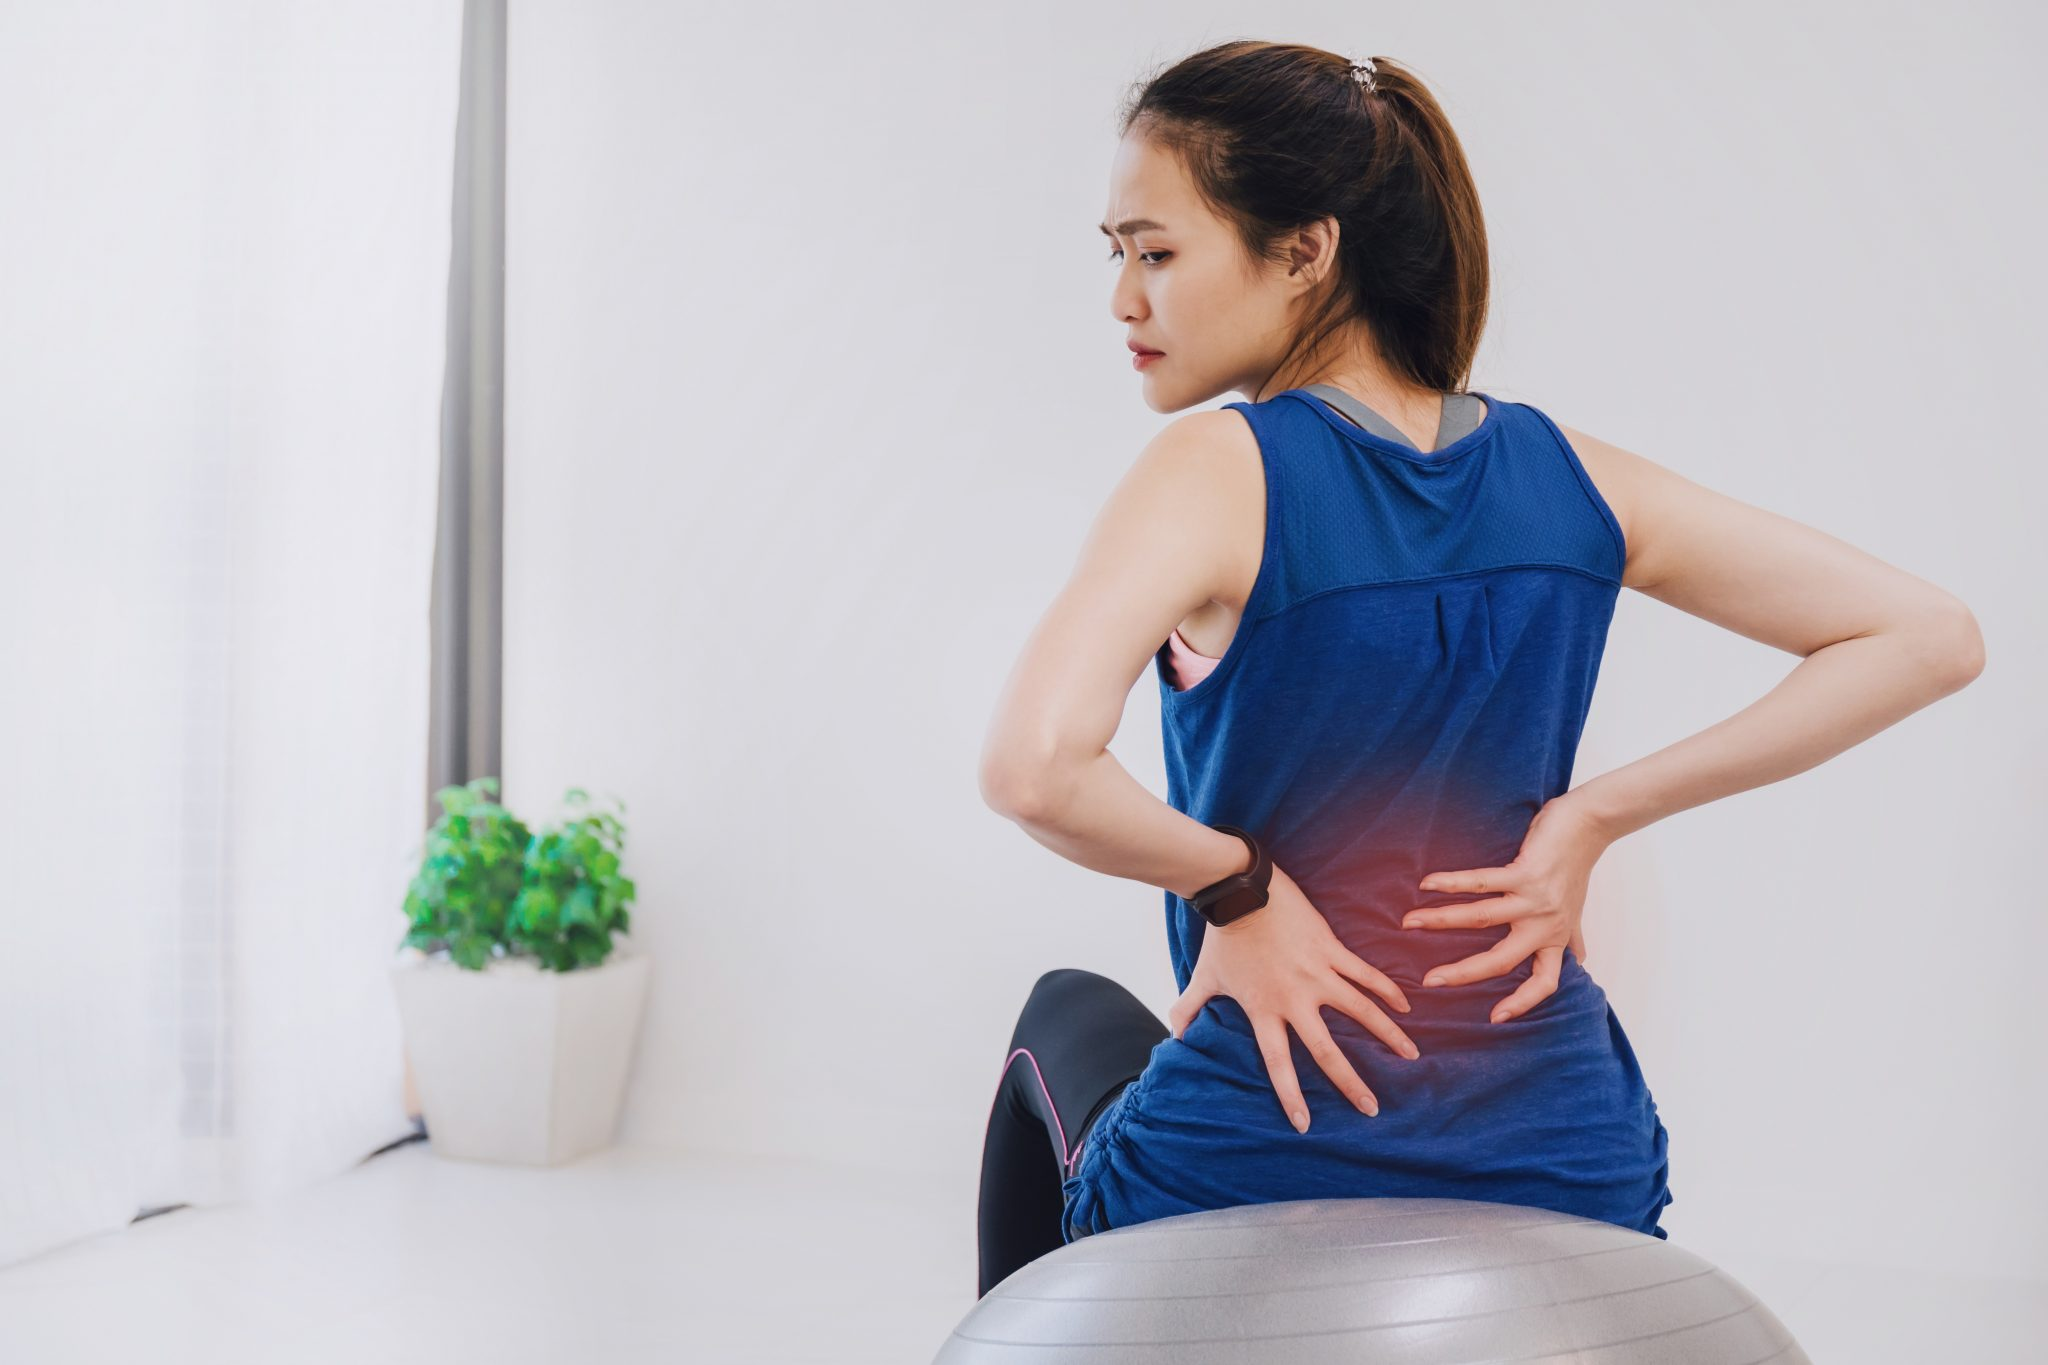 7 Ways to Relieve Back Pain Naturally